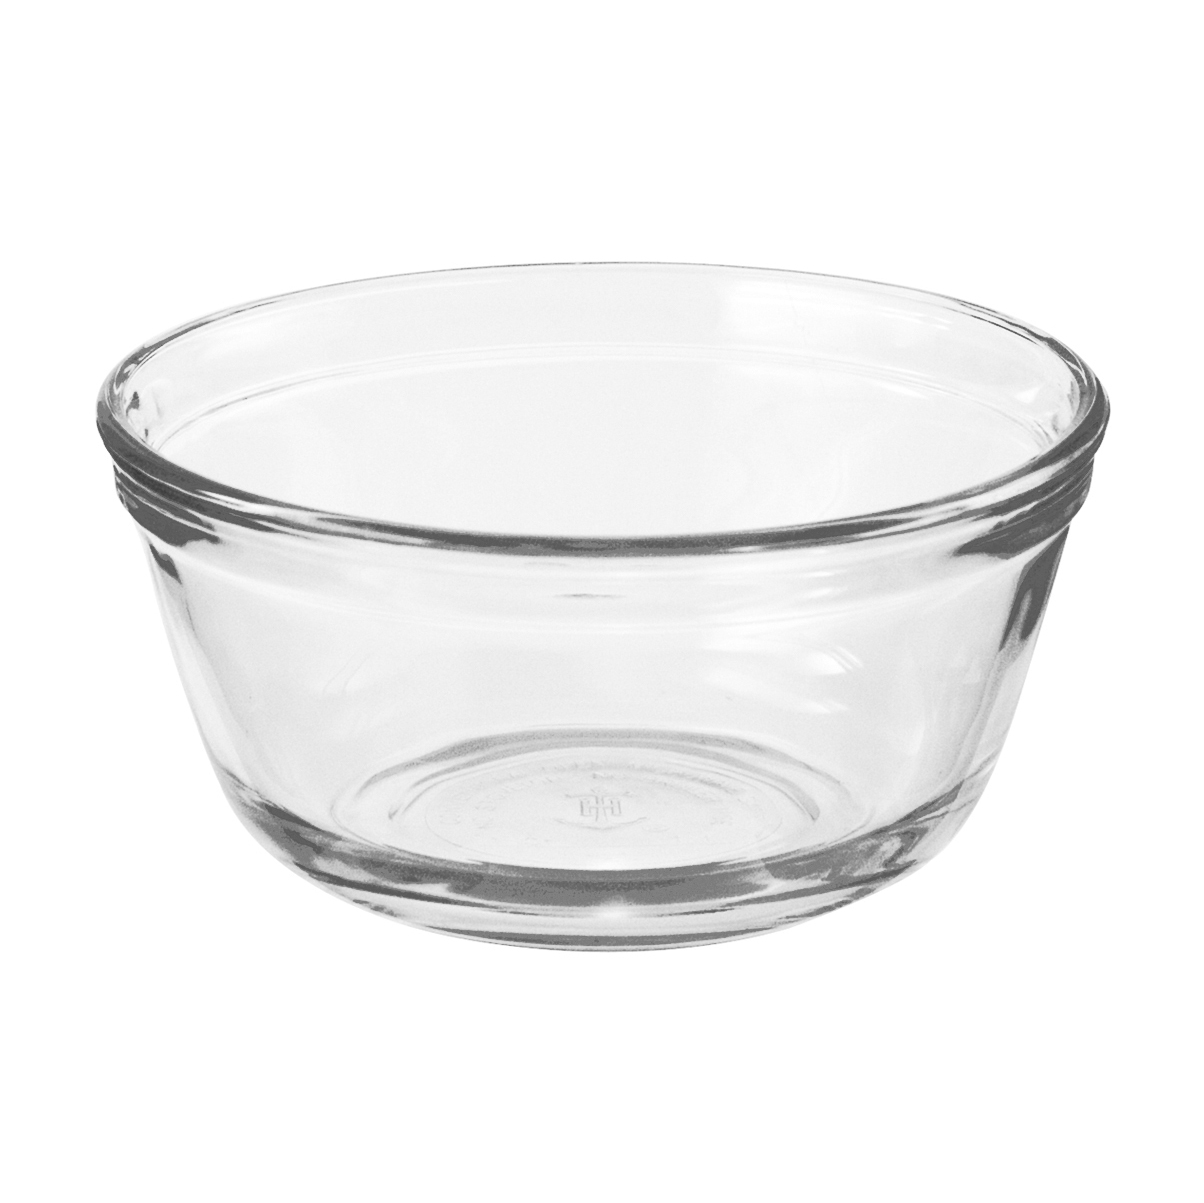 Anchor Hocking Foodservice 81574AHG18 mixing bowl, glass